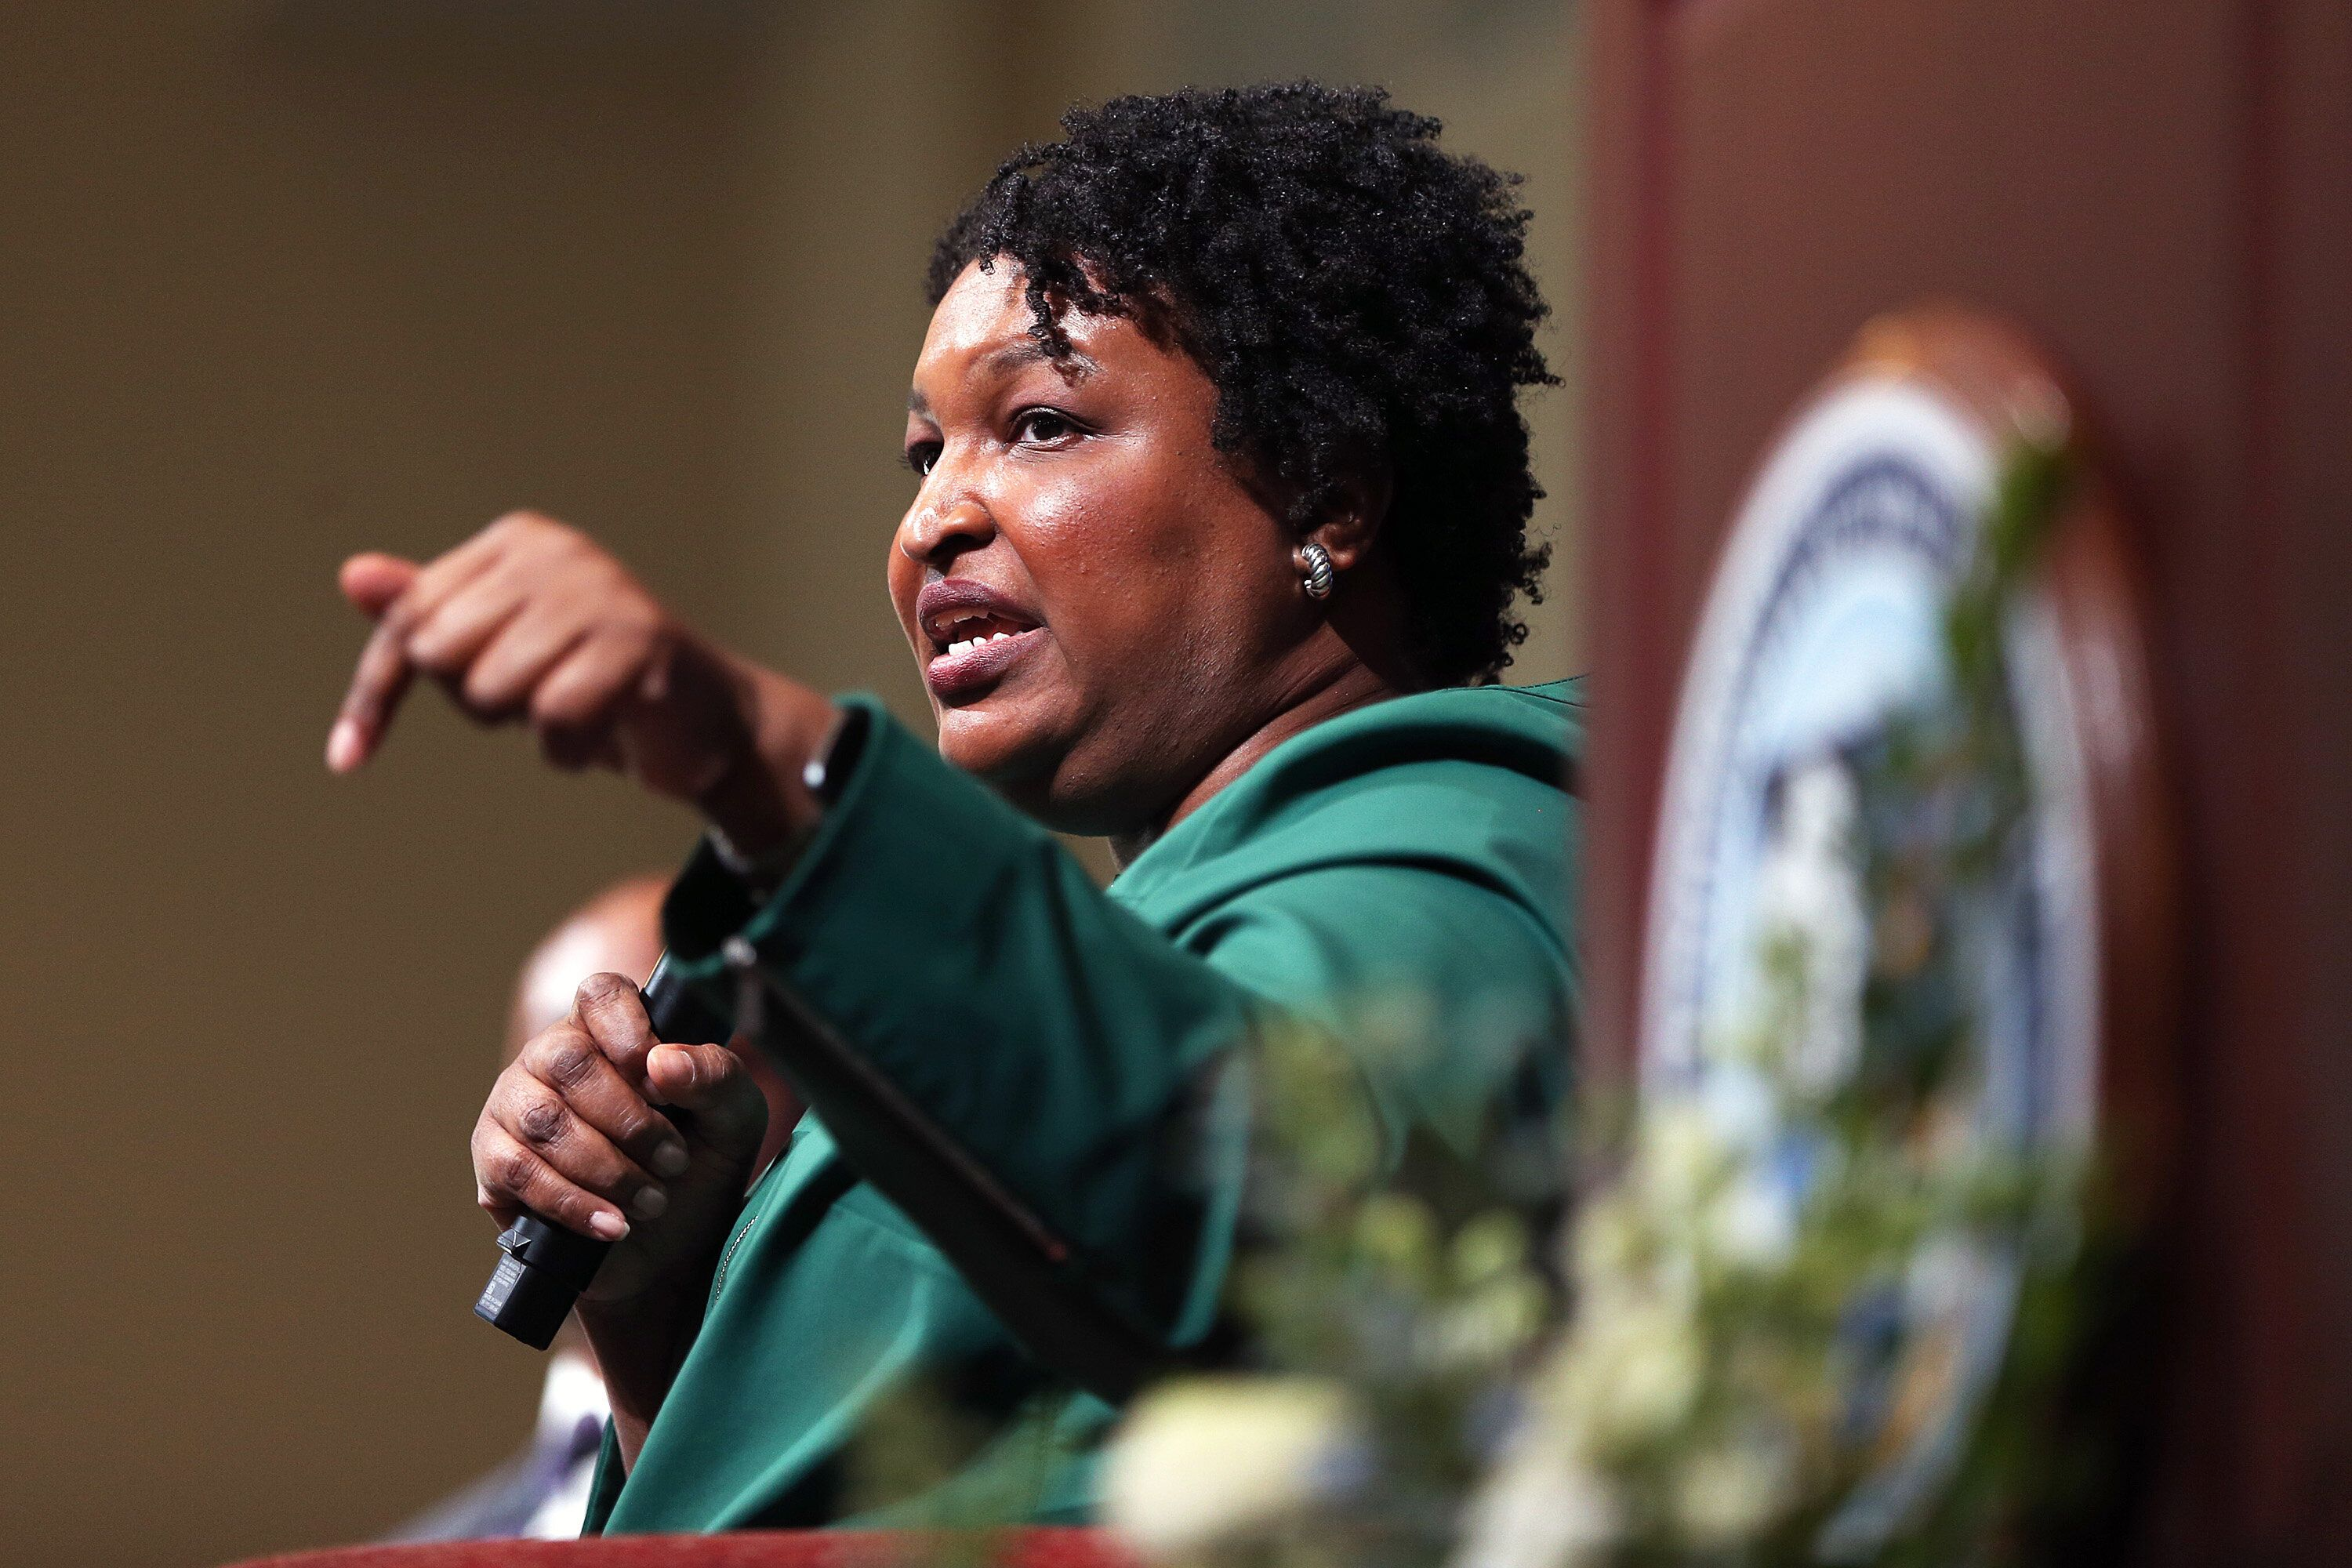 The climate report marks the debut research from Democrat Stacey Abrams' new group, the Southern Economic Advancement Project